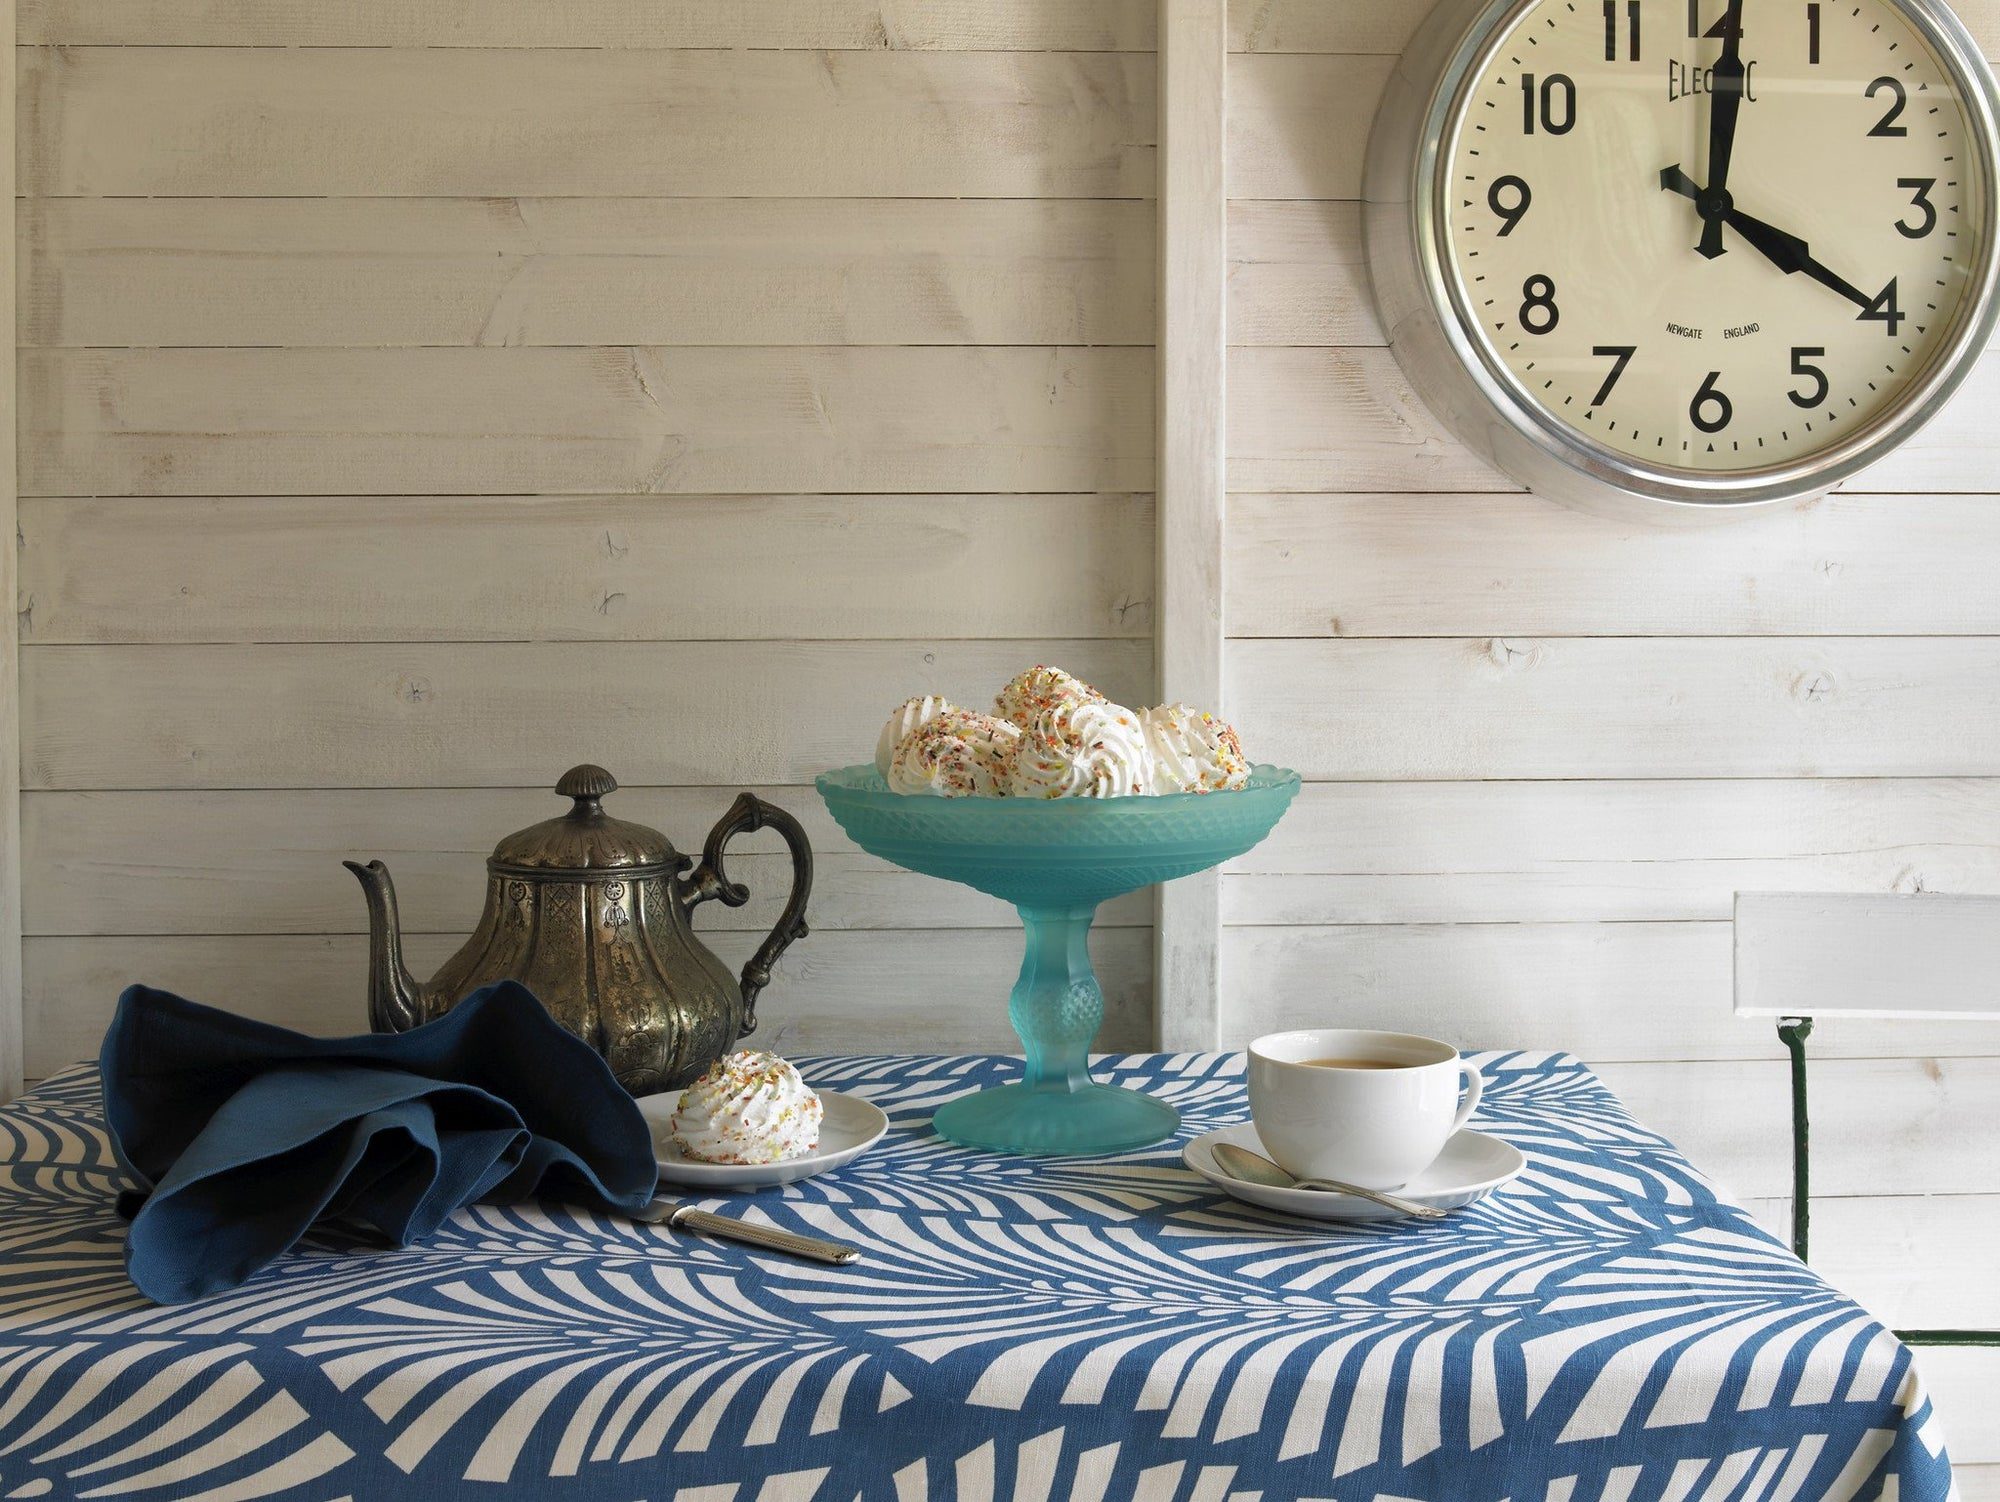 On Sale Pattern tablecloth, napkins, table runners ships from Canada including the USA